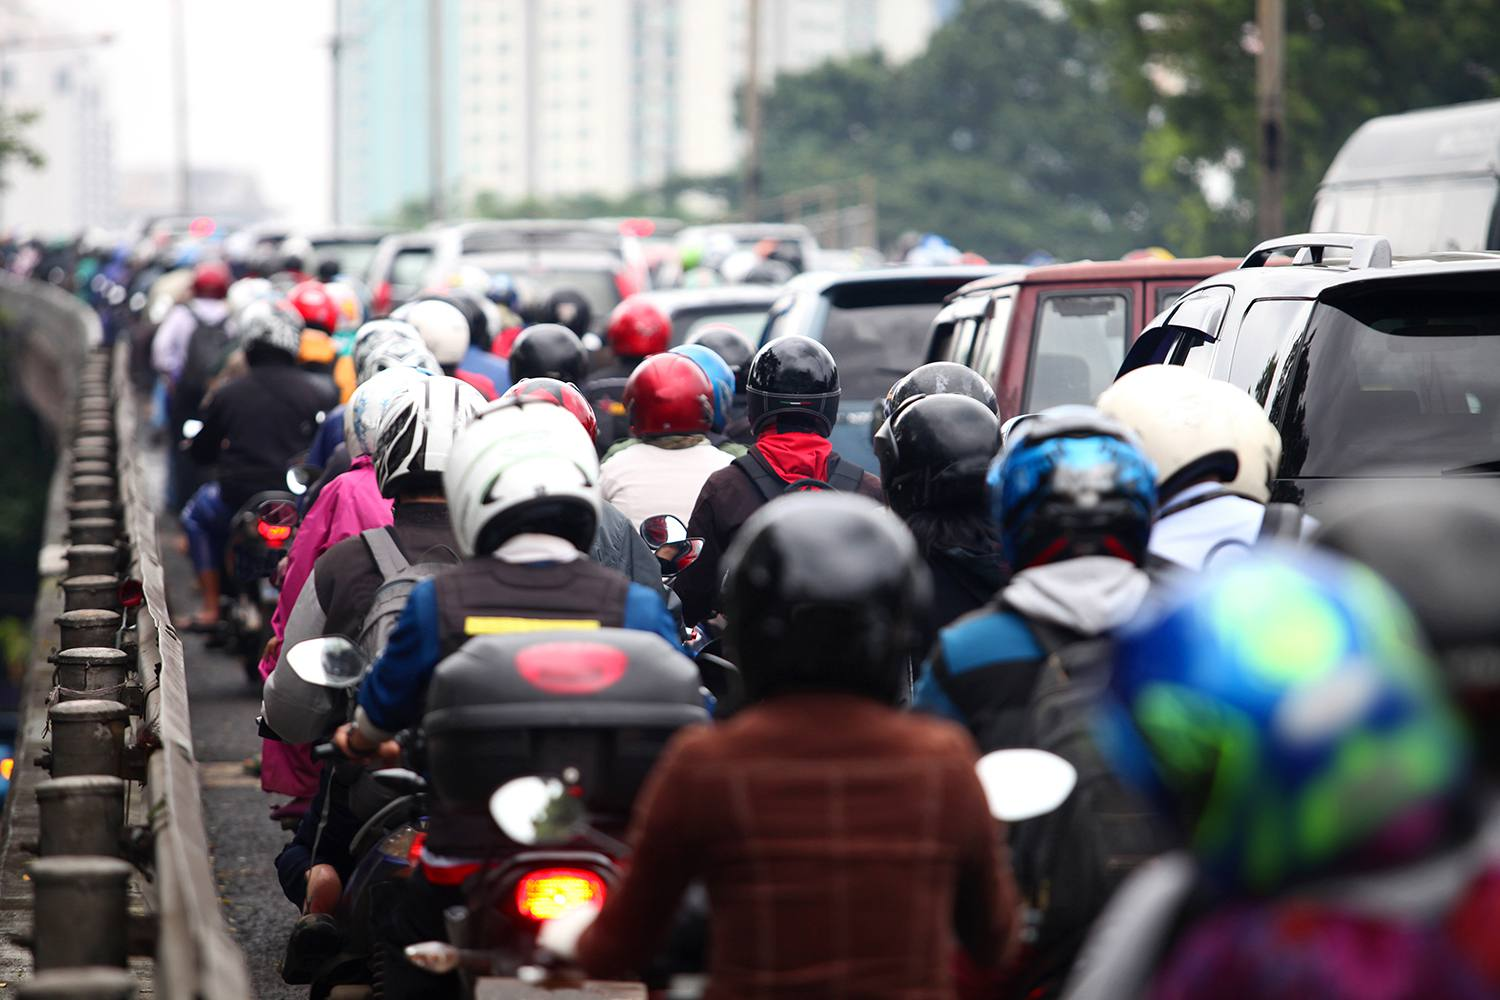 Crowded Street In Indonesia